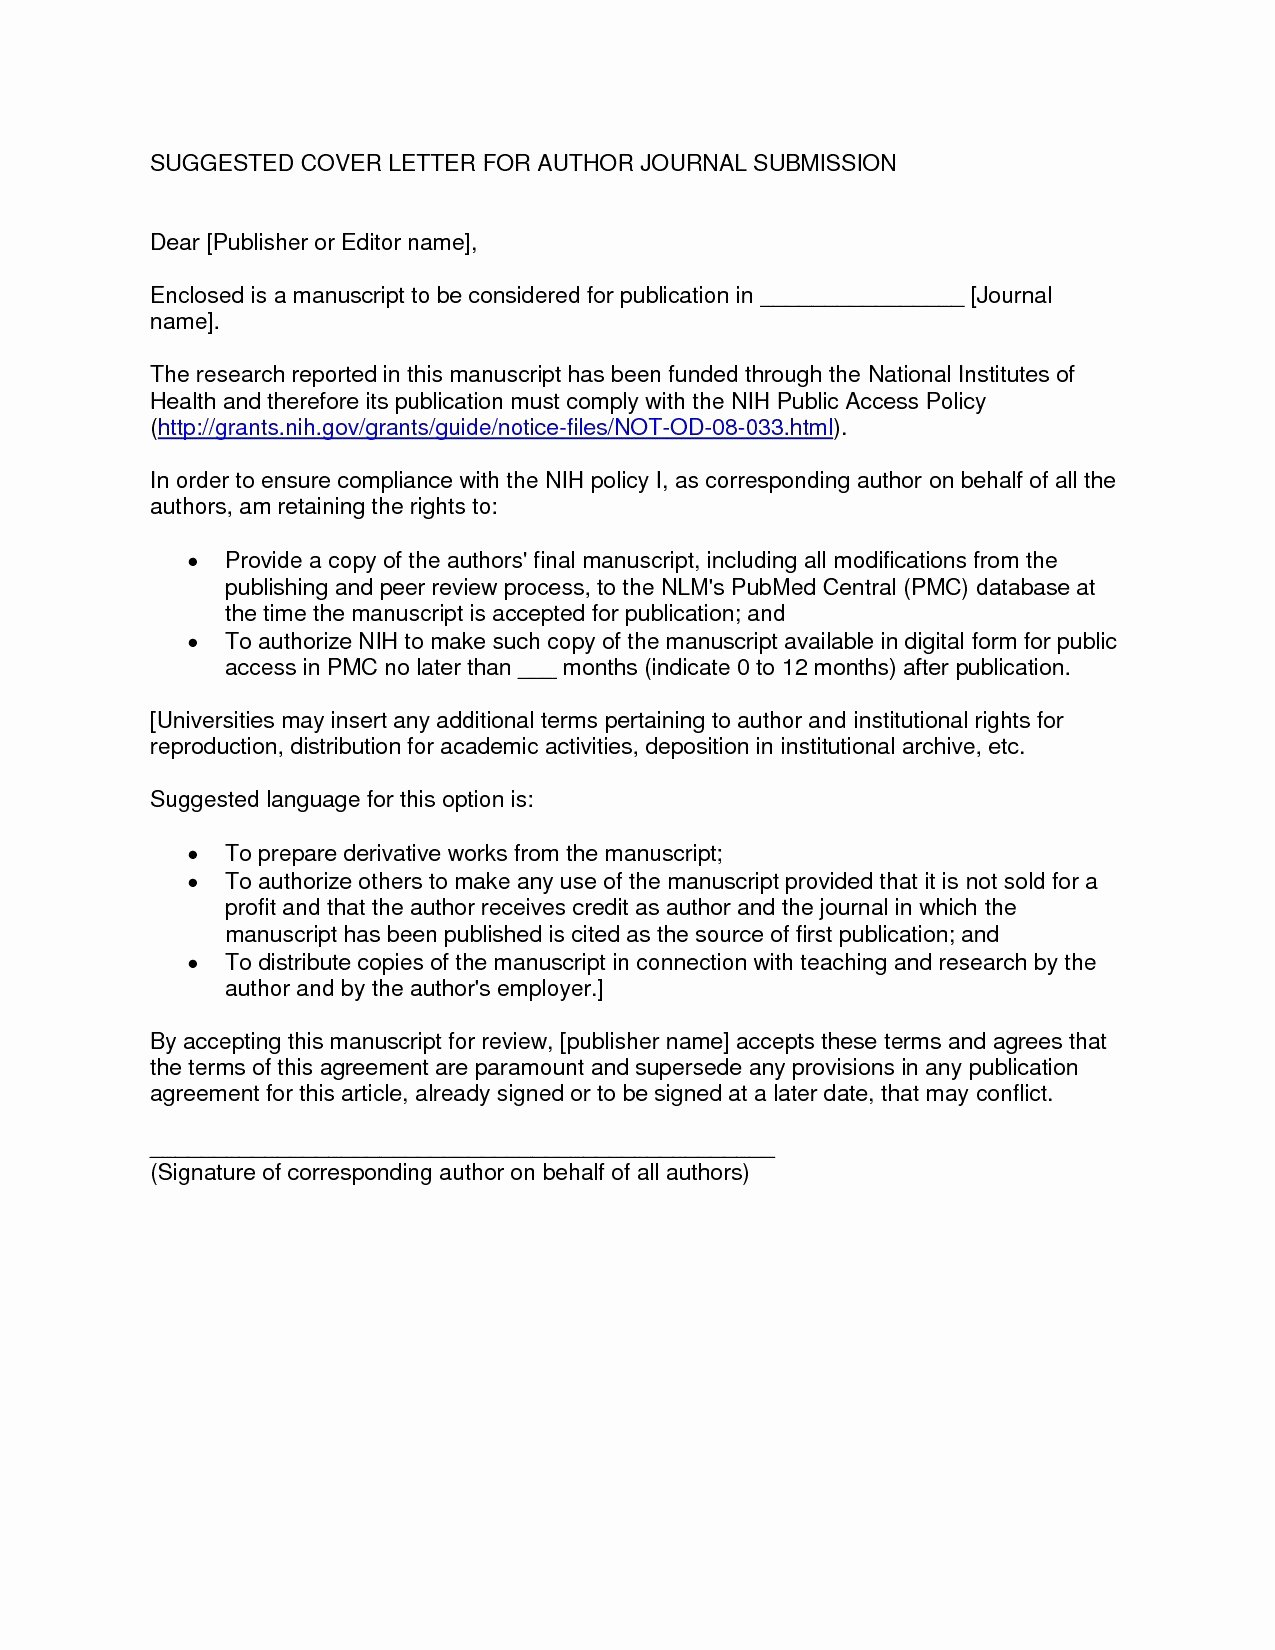 Mental Health Confidentiality Agreement Template Awesome Mental Health Confidentiality Agreement Template